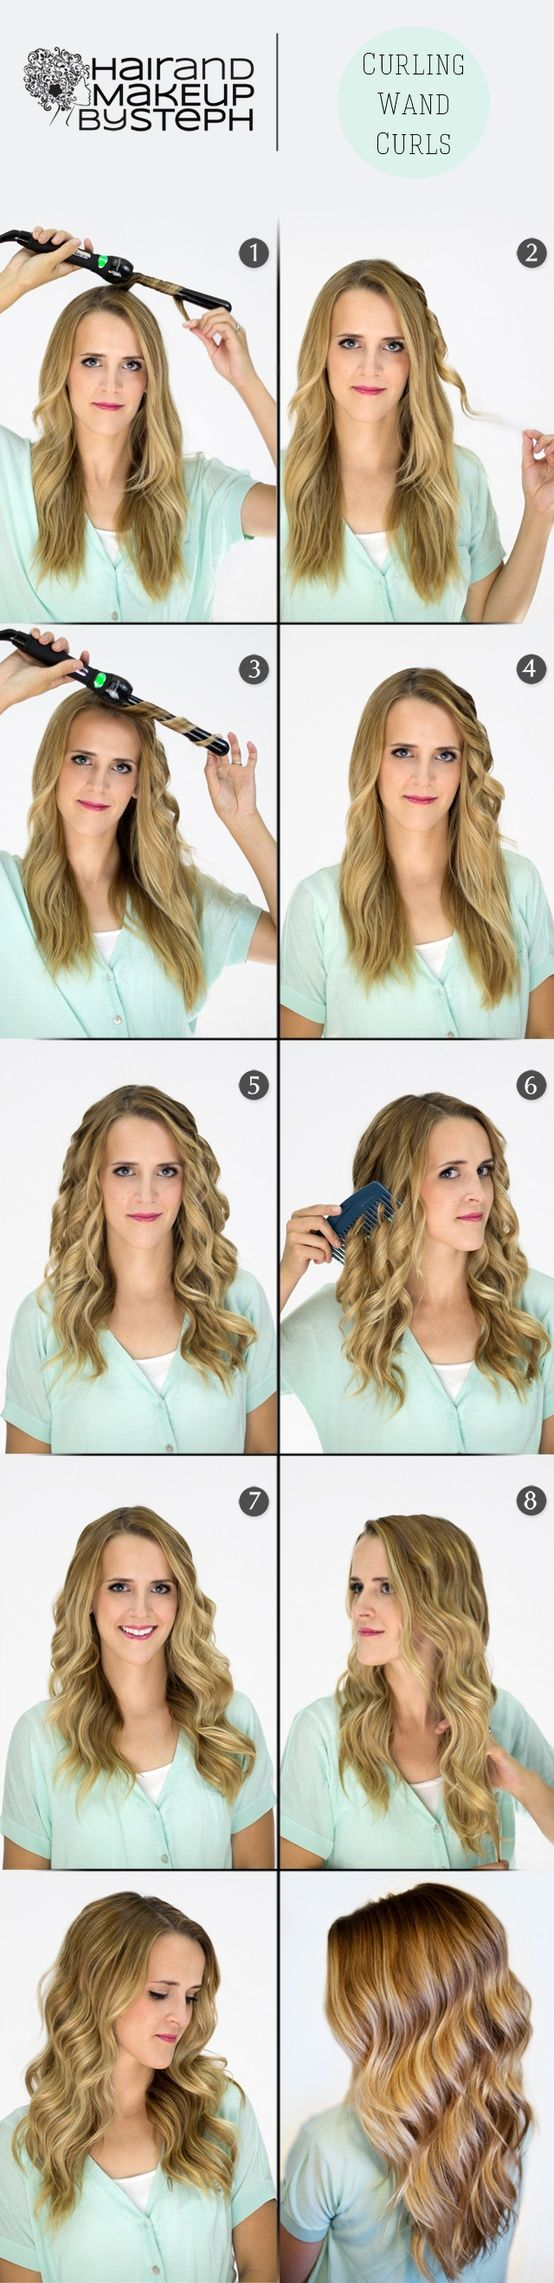 Curling Wand Waves Hair Pinterest Curling Wands